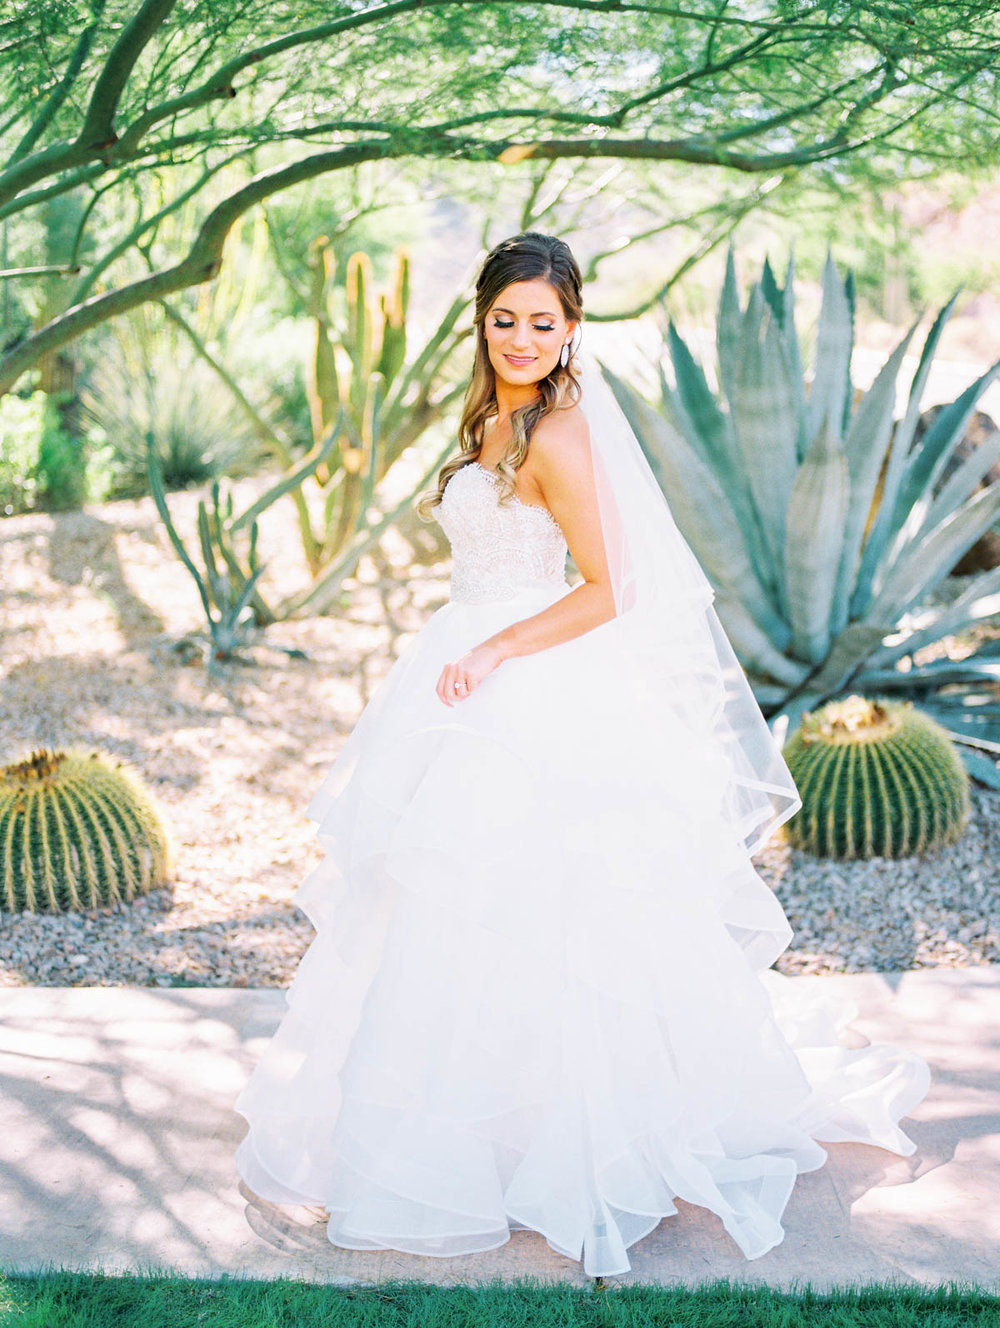 Stunning desert bride on film captured by Tucson Wedding Photographers Betsy & John